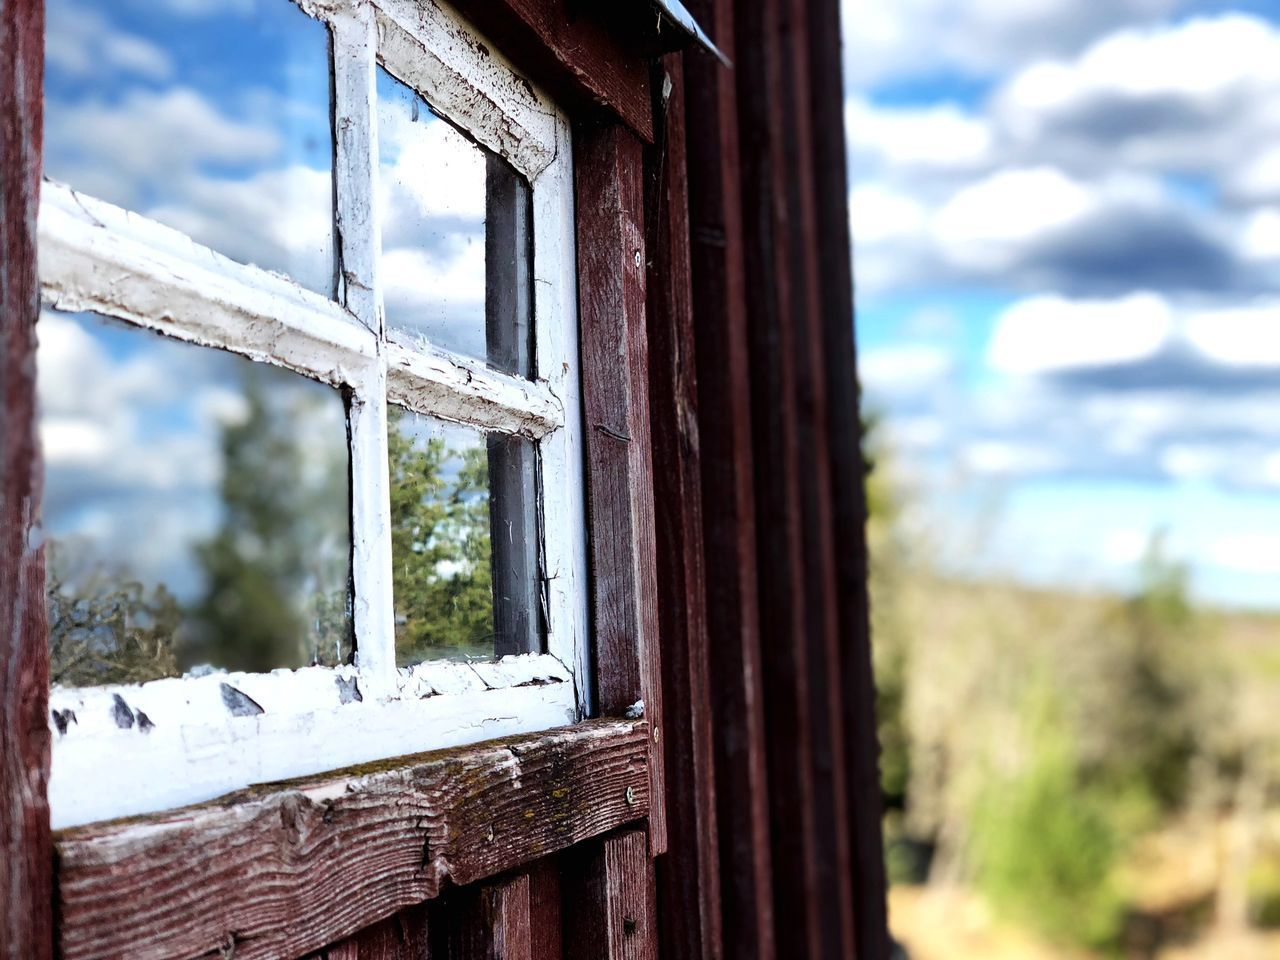 window, day, wood - material, focus on foreground, no people, architecture, glass - material, built structure, nature, sky, old, cloud - sky, outdoors, tree, abandoned, transparent, close-up, damaged, weathered, building exterior, window frame